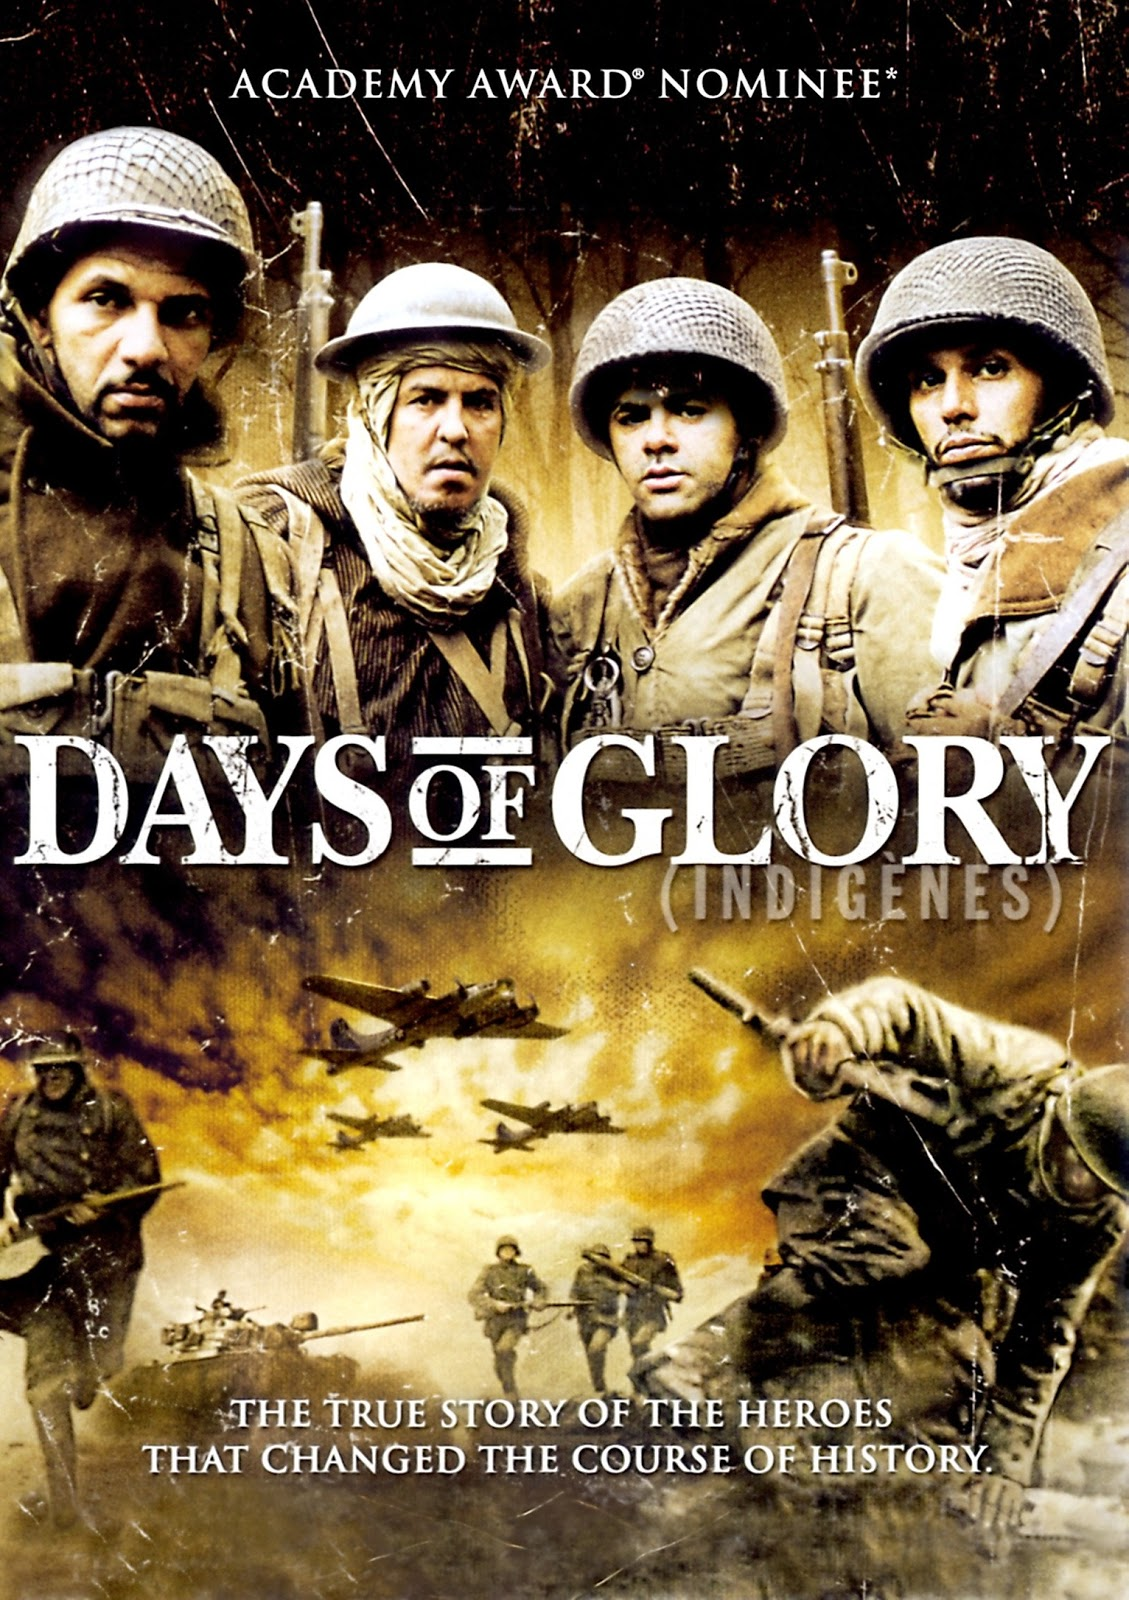 LVII Series & Movies DB - Página 5 Days_of_glory_2006_ws_r1-front-www.getdvdcovers.com_